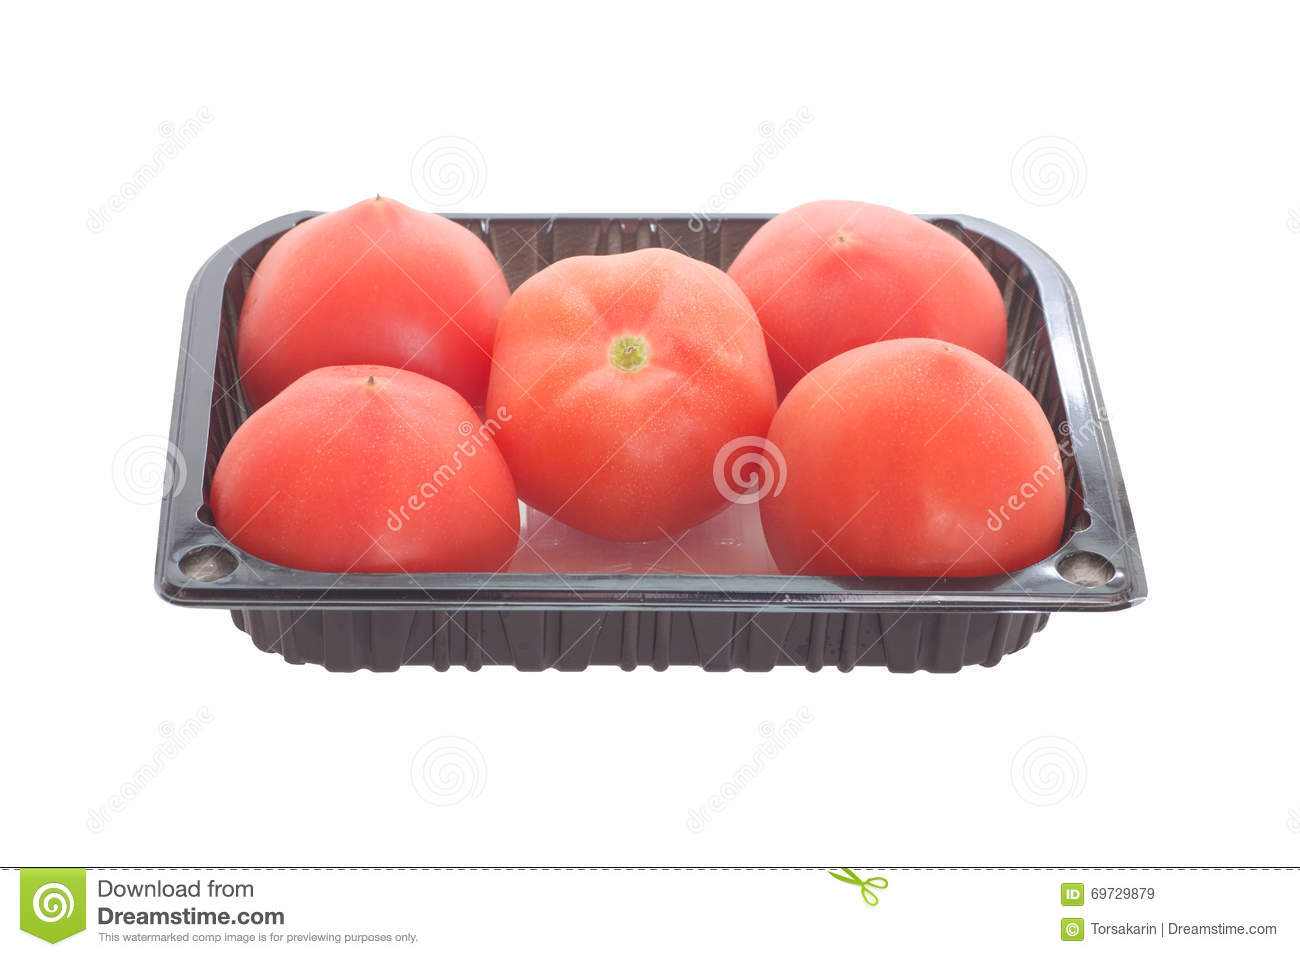 Tomatoes Stock Photo - Image: 69729879